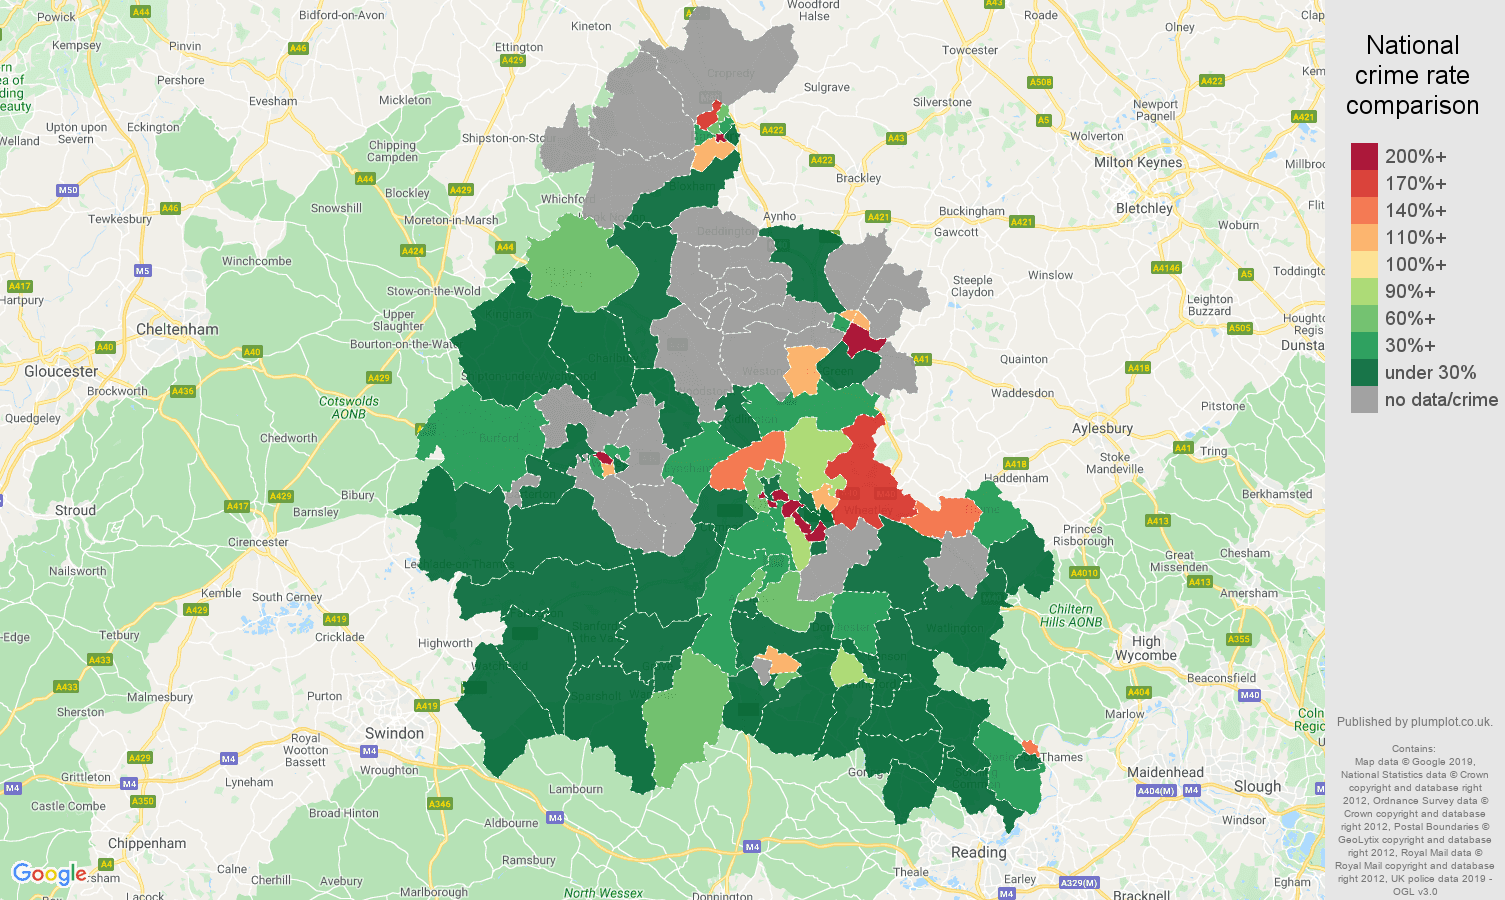 Oxfordshire shoplifting crime rate comparison map